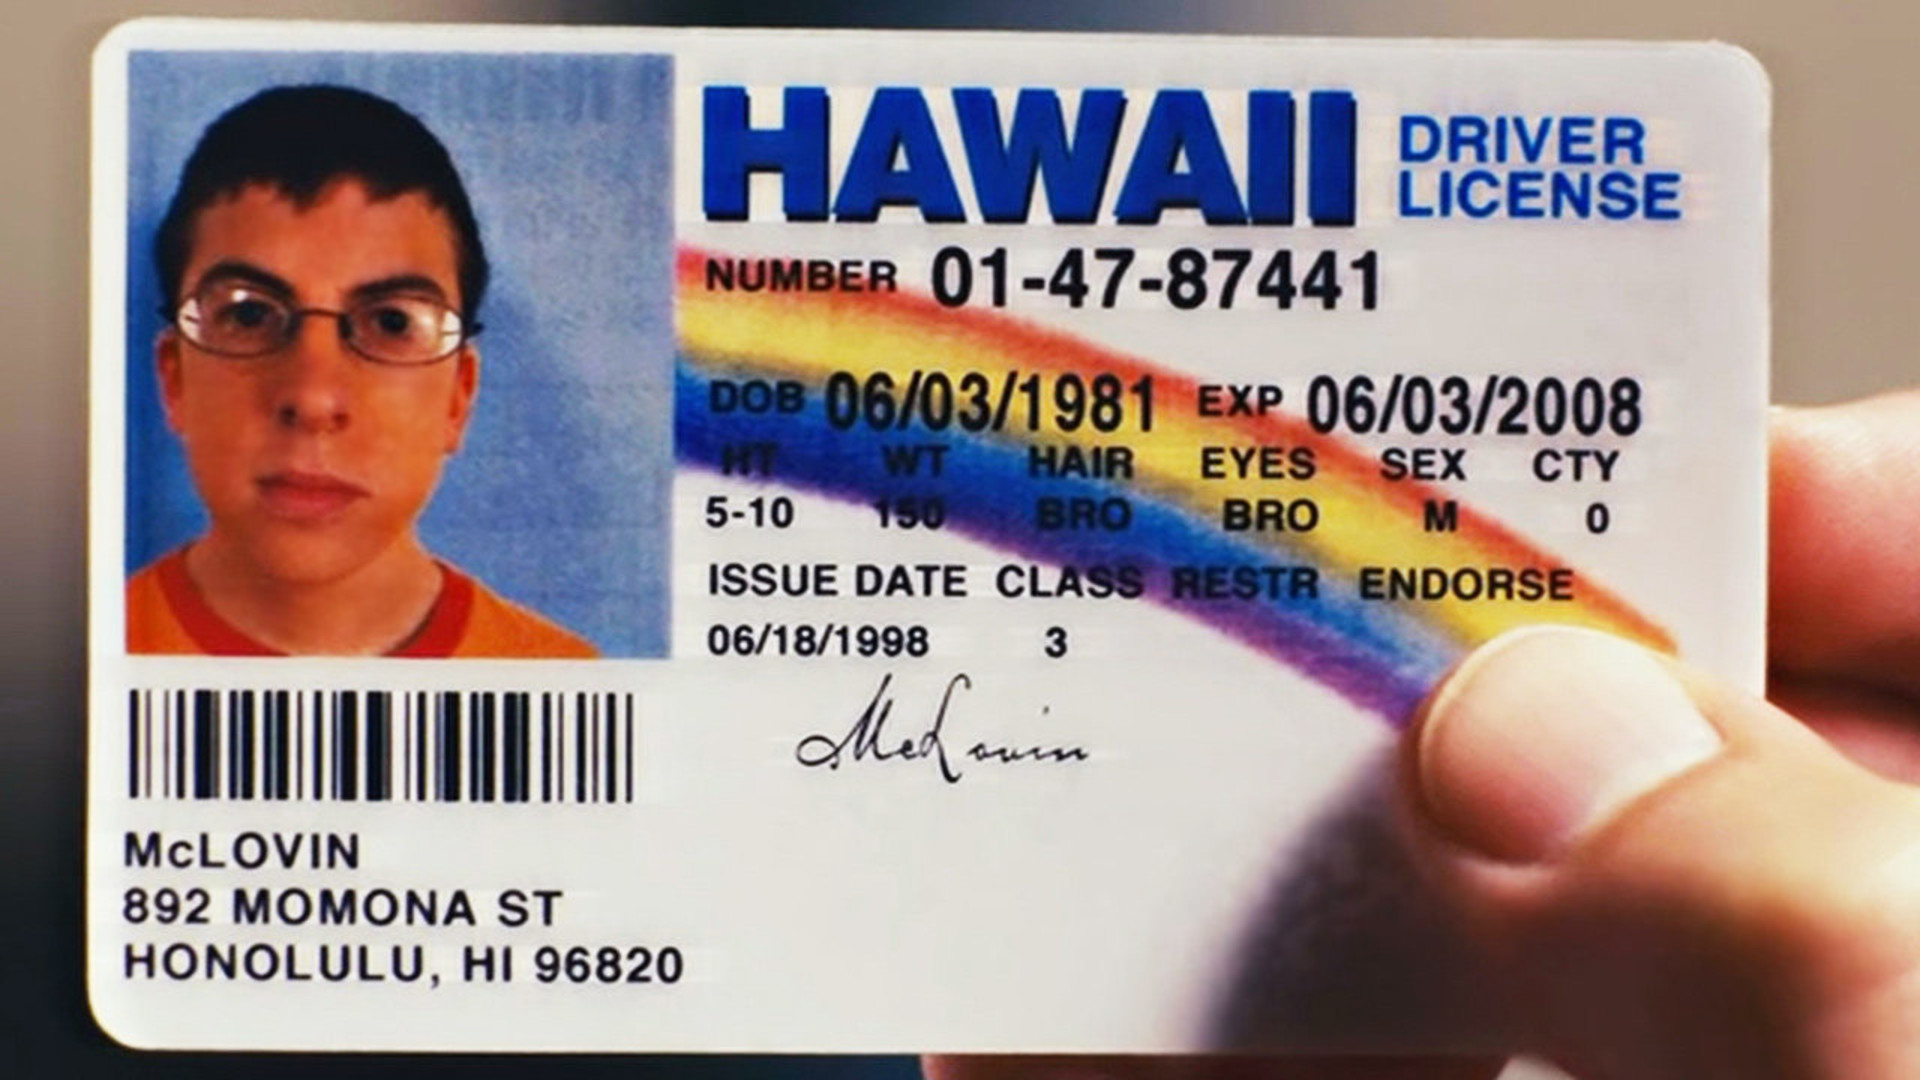 His – Dead To Officially British Man Has Sick Name Mclovin A Friend Honour Changed Chirpse